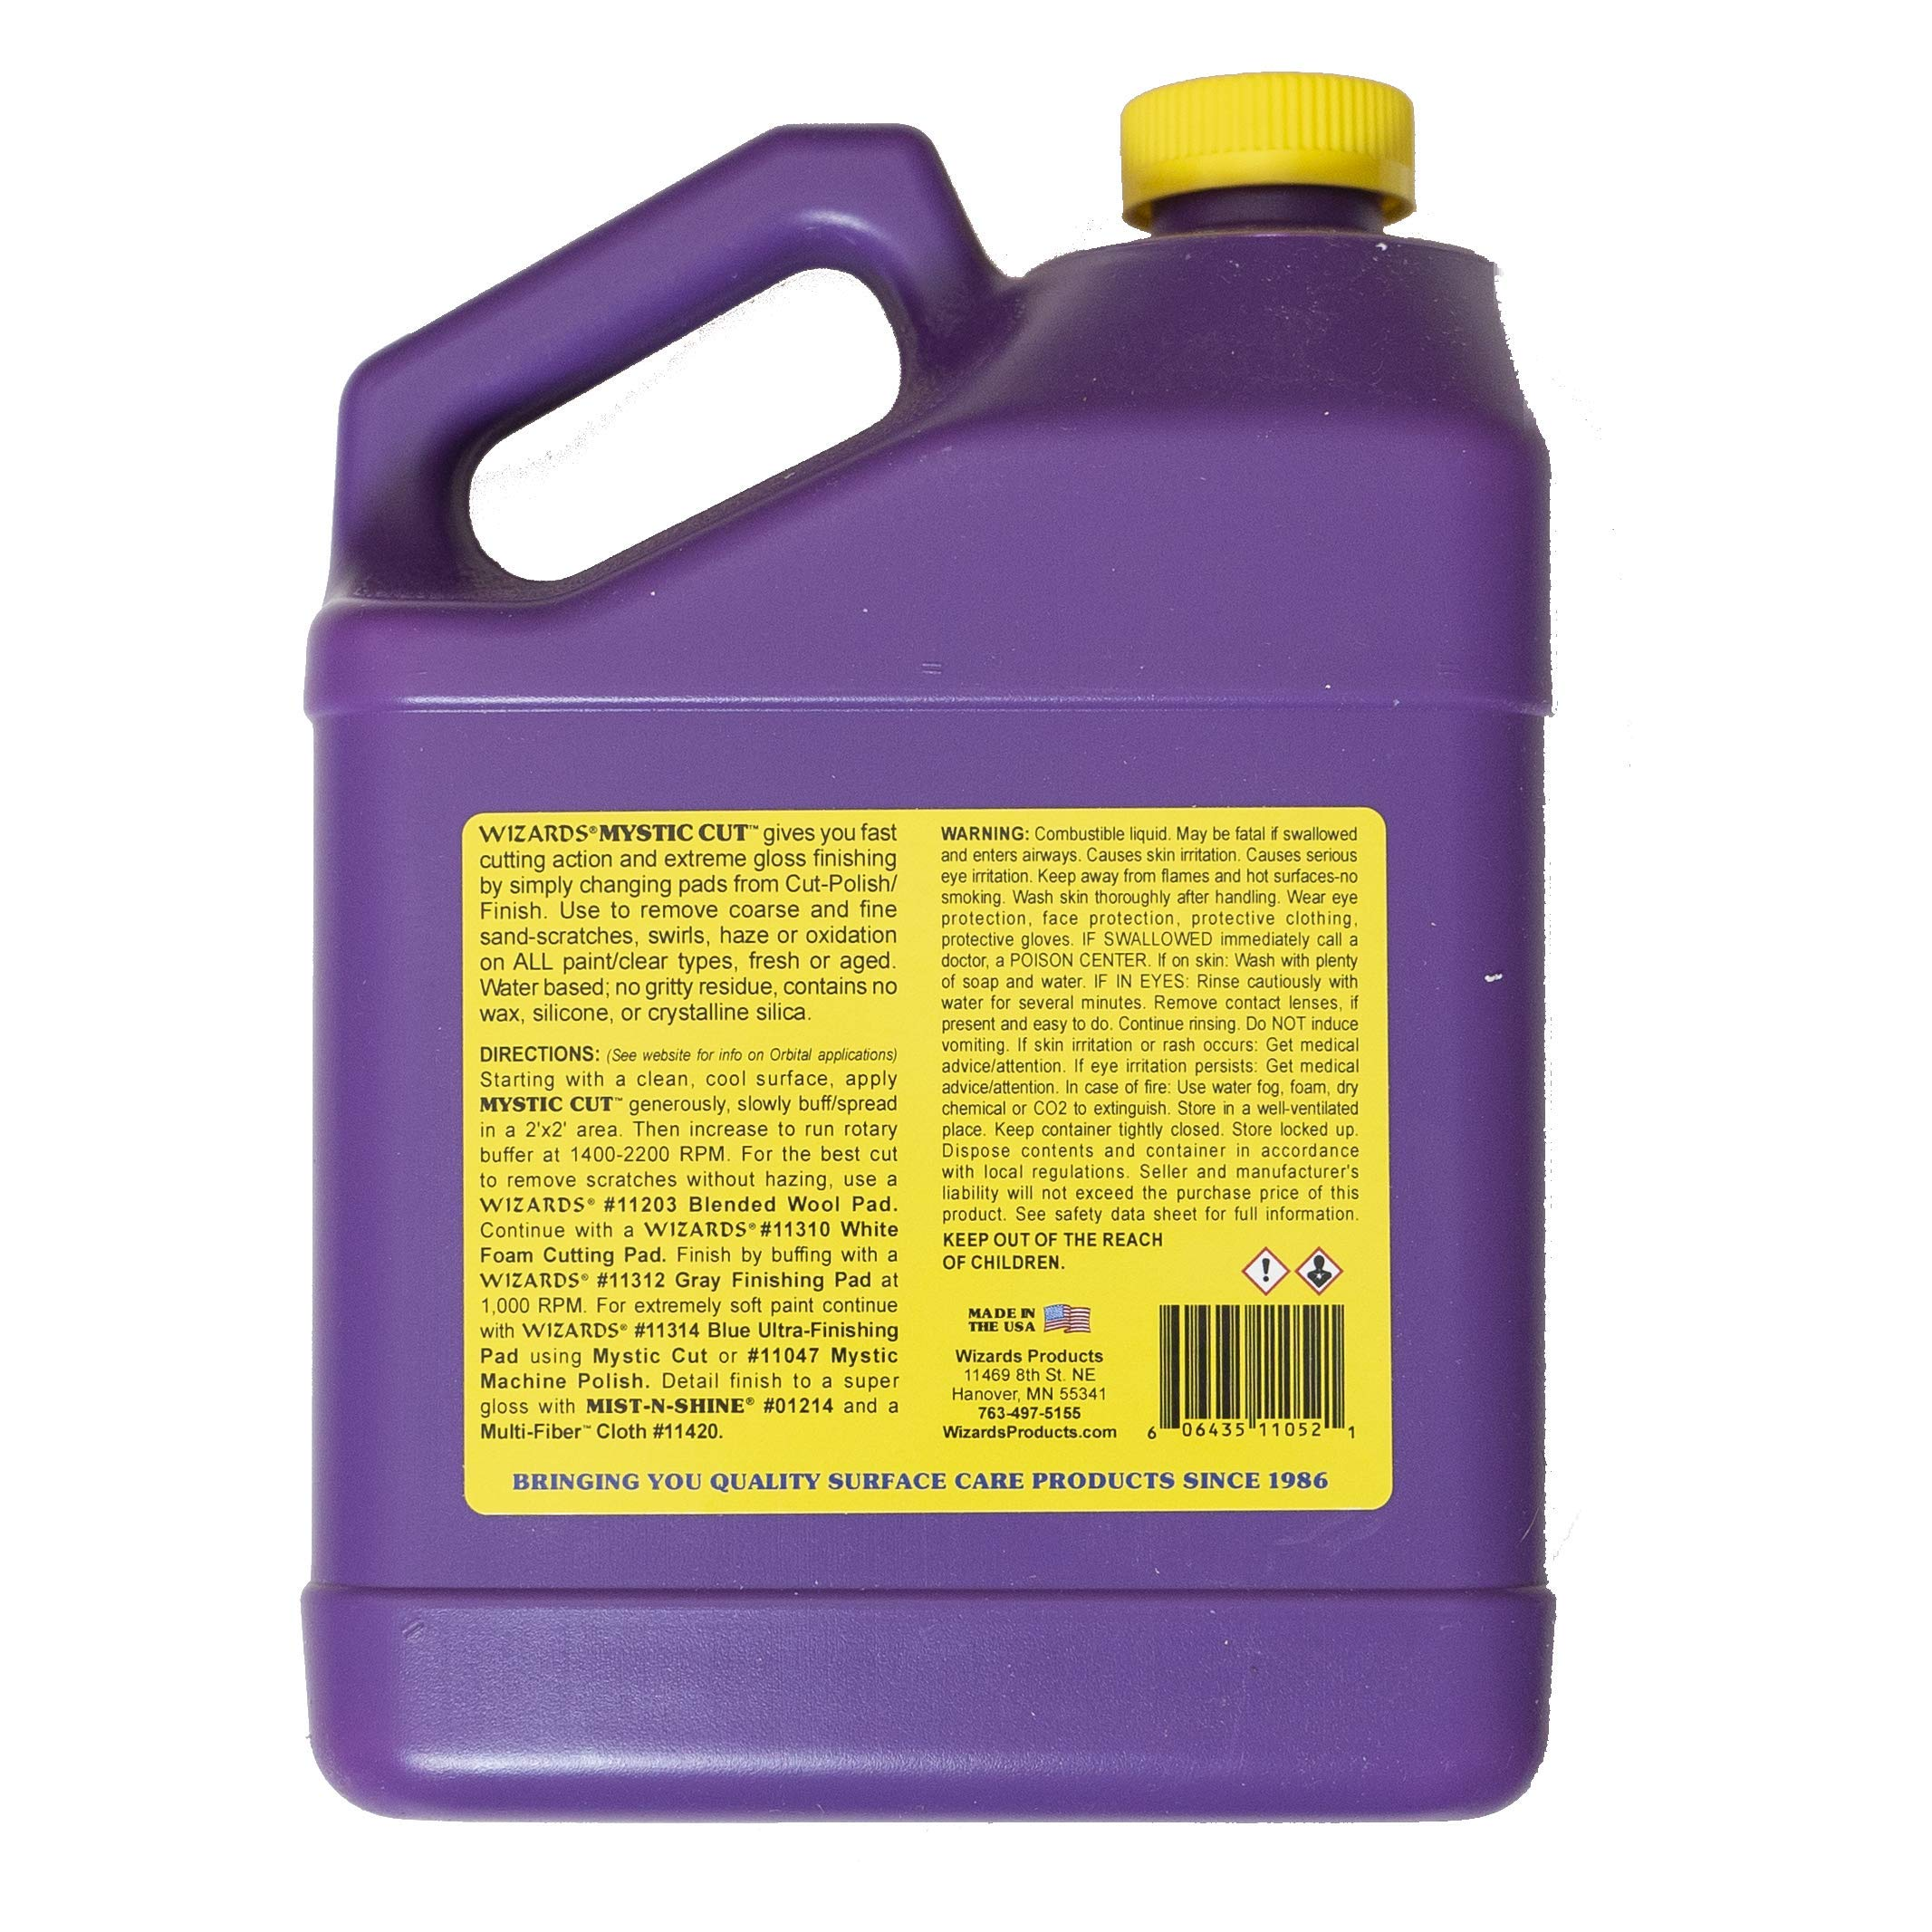 Wizards Buffing Liquid - Cutting Compounds & Polish Machine Glaze (Gallon, Mystic Cut Compound) by Wizards (Image #2)